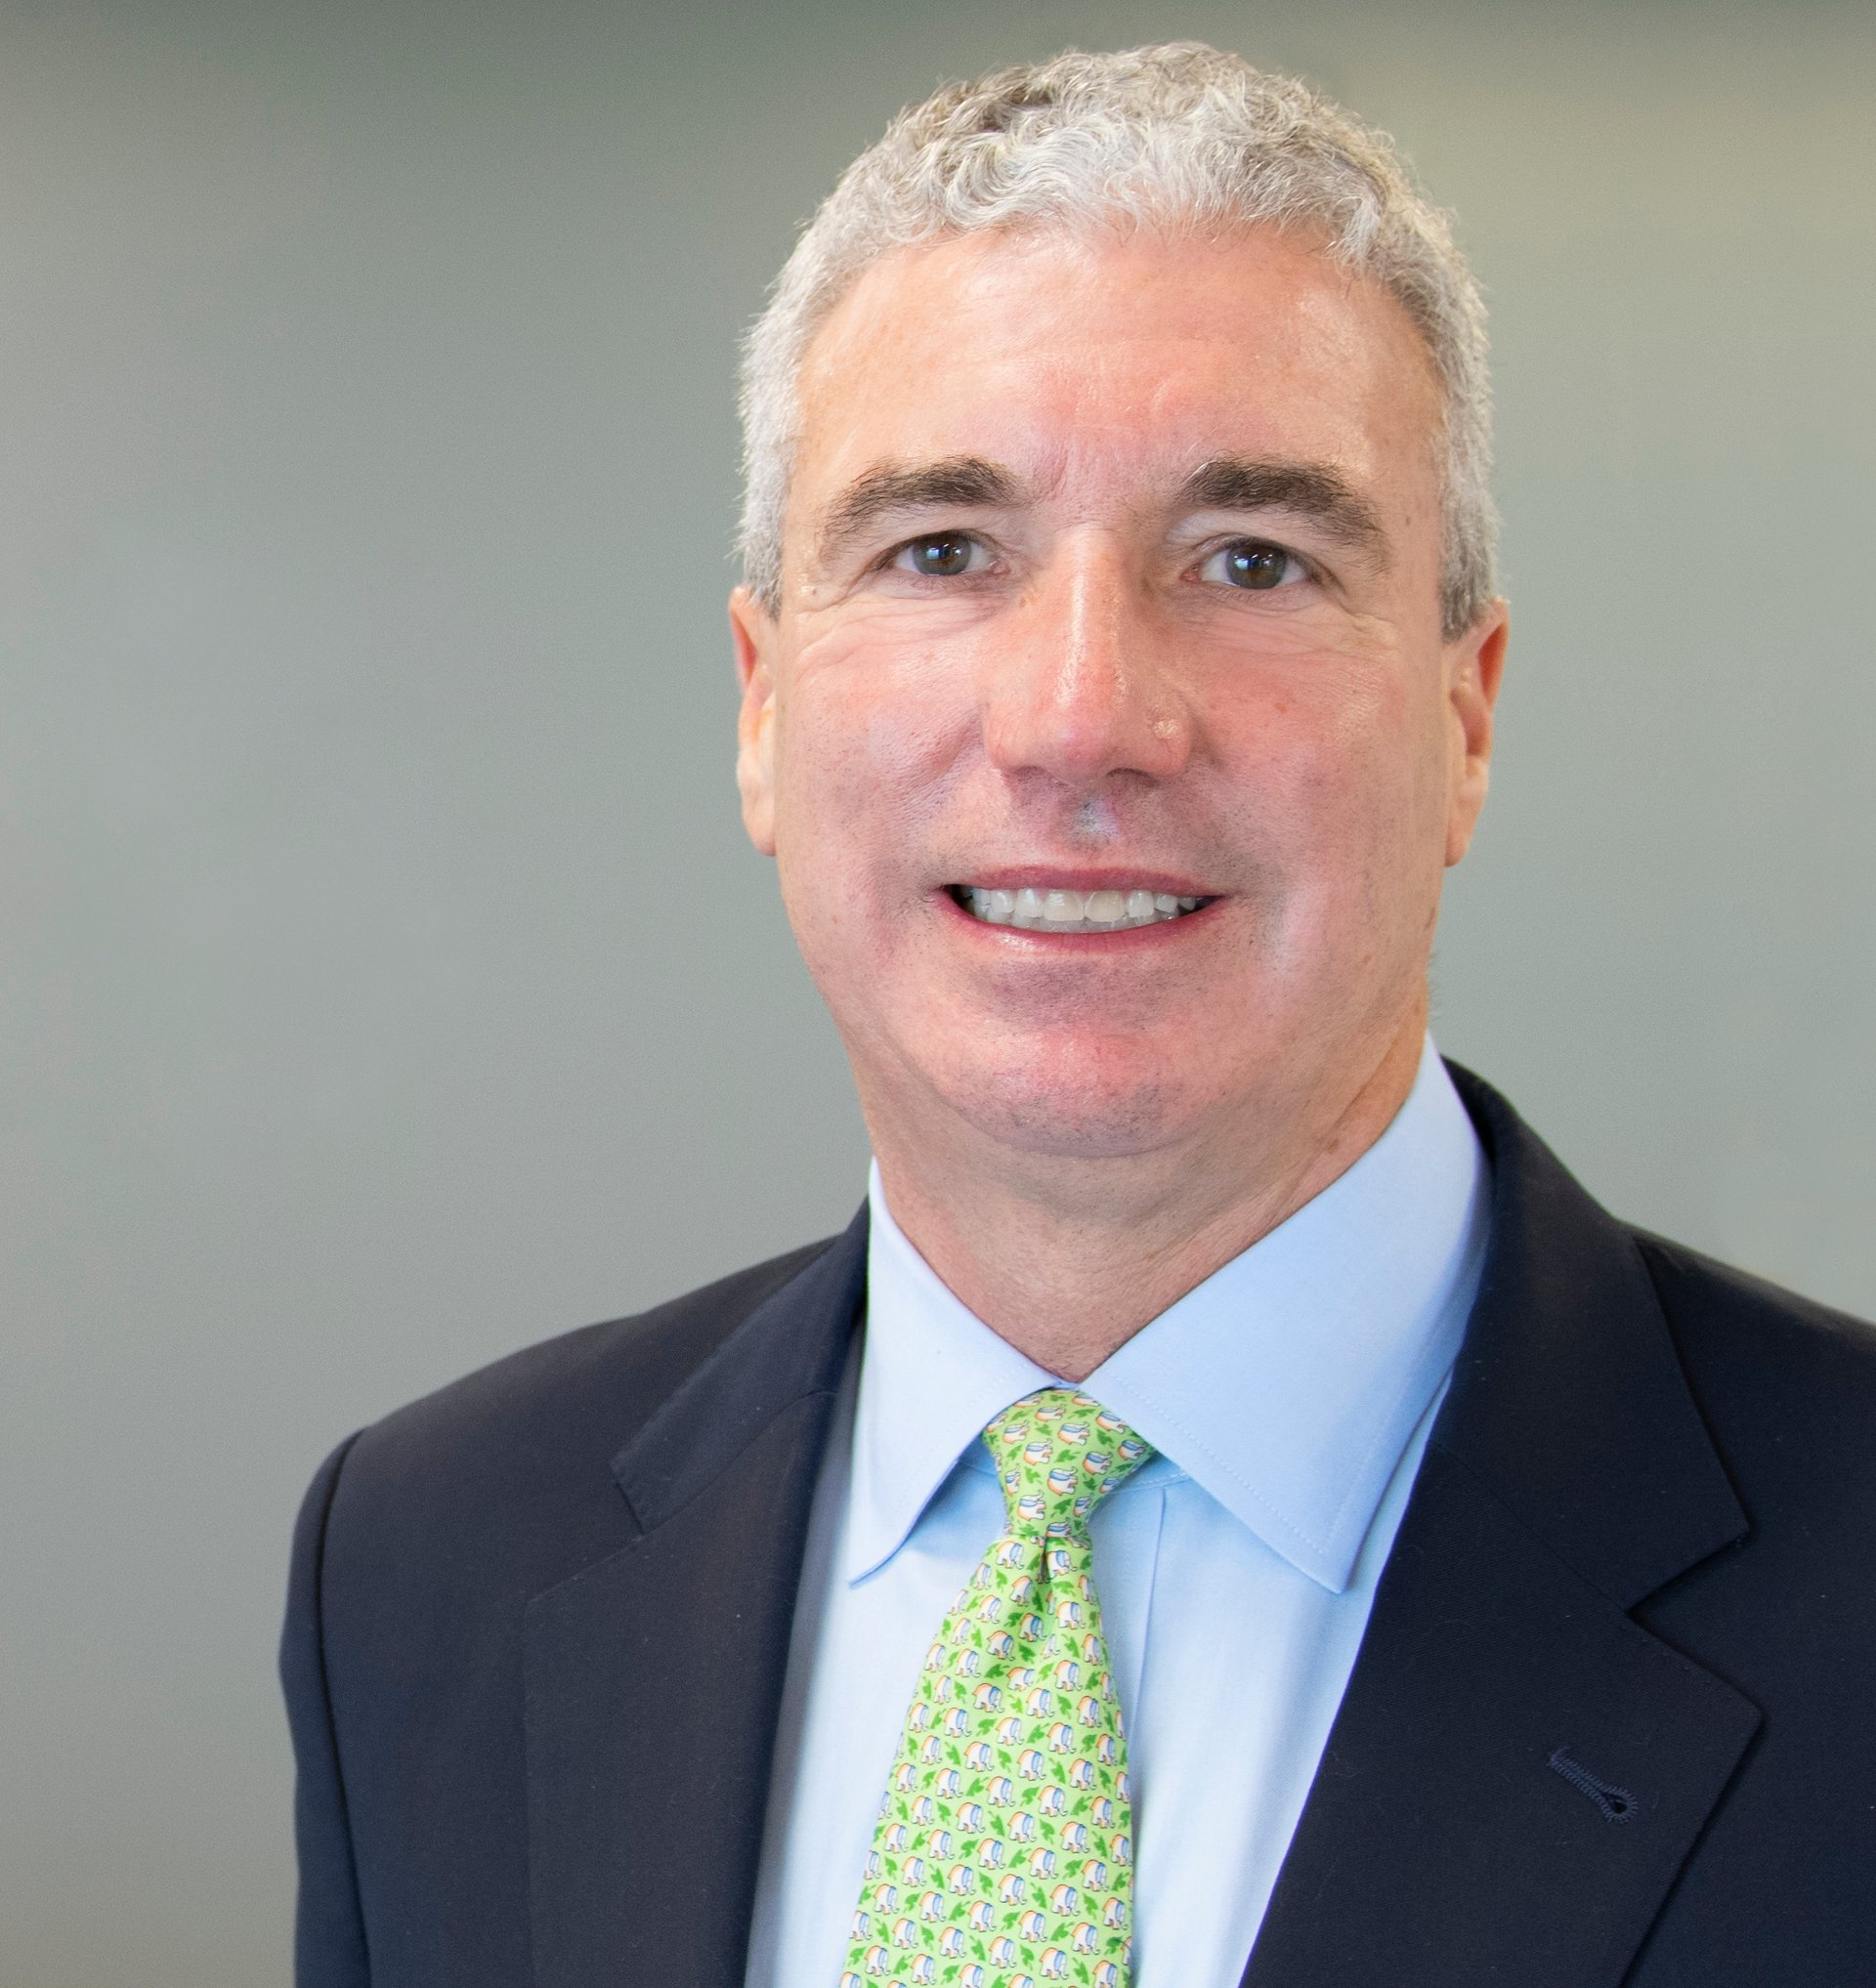 Knittel, who brings more than 25 years of global aerospace leadership experience to the position, will join the company at its Americas headquarters in Herndon, Virginia, on 12 January, 2018, as Airbus Americas Chairman and Chief Executive Officer.